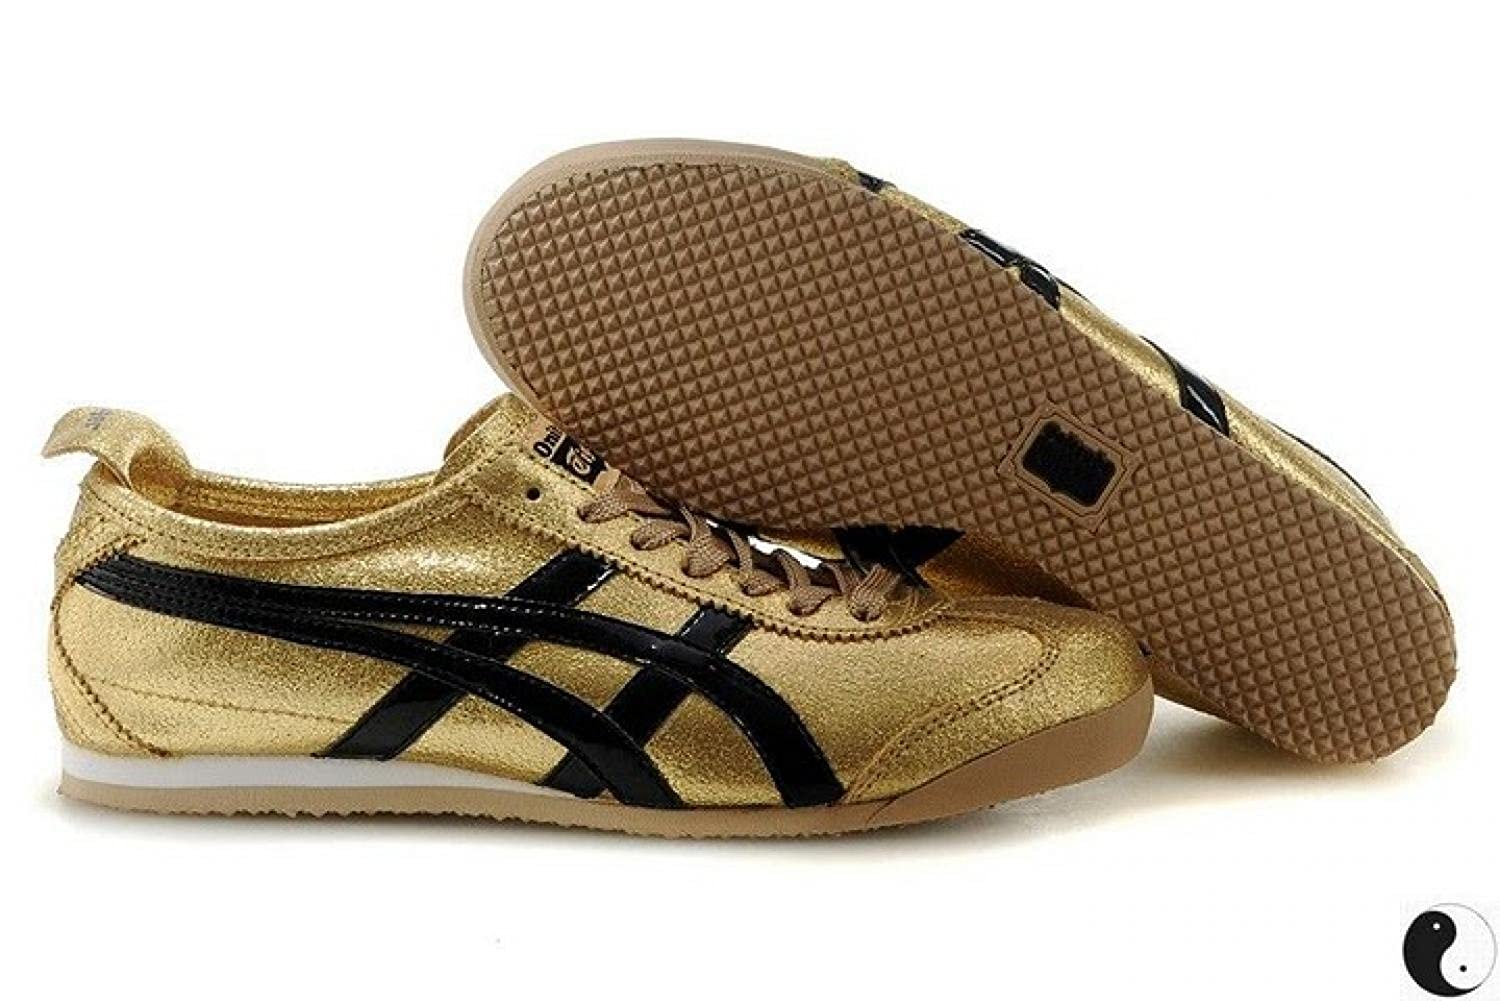 huge selection of bb02a 043fa Asics Onitsuka Tiger Scarpe Unisex Mexico 66 HL5B0 Gold ...